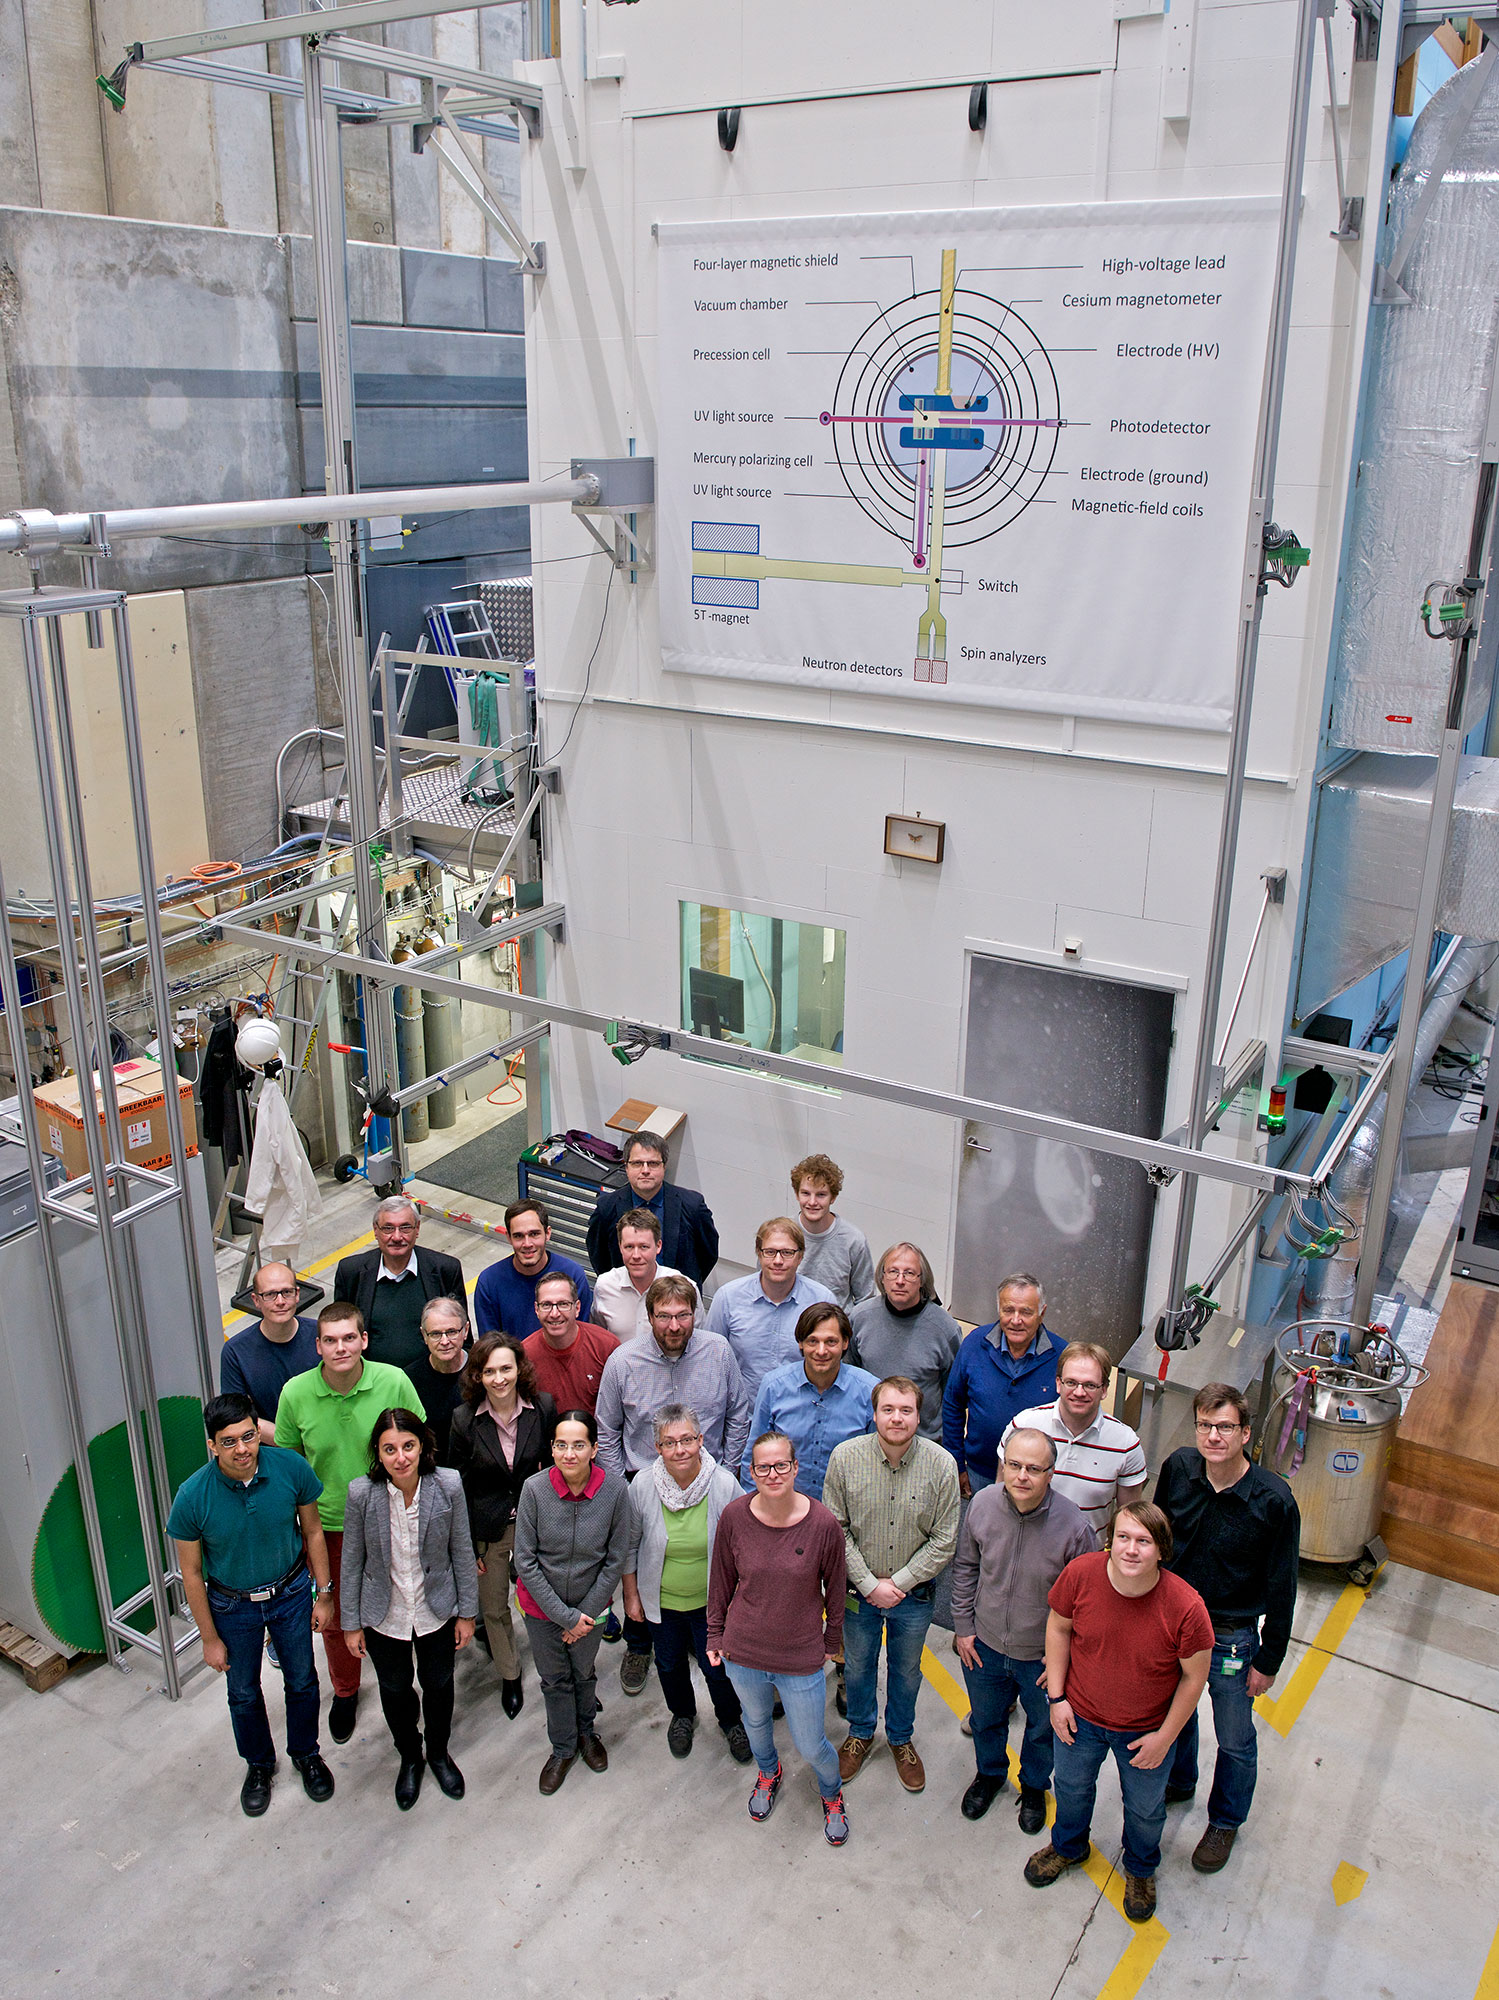 Researchers from seven countries are participating in the experiment to determine the electric dipole moment of the neutron. The photo shows part of the team in front of the research facility at PSI where the studies were conducted. The data obtained here were also used by the researchers in the search for dark matter. (Photo: Paul Scherrer Institute/Markus Fischer)